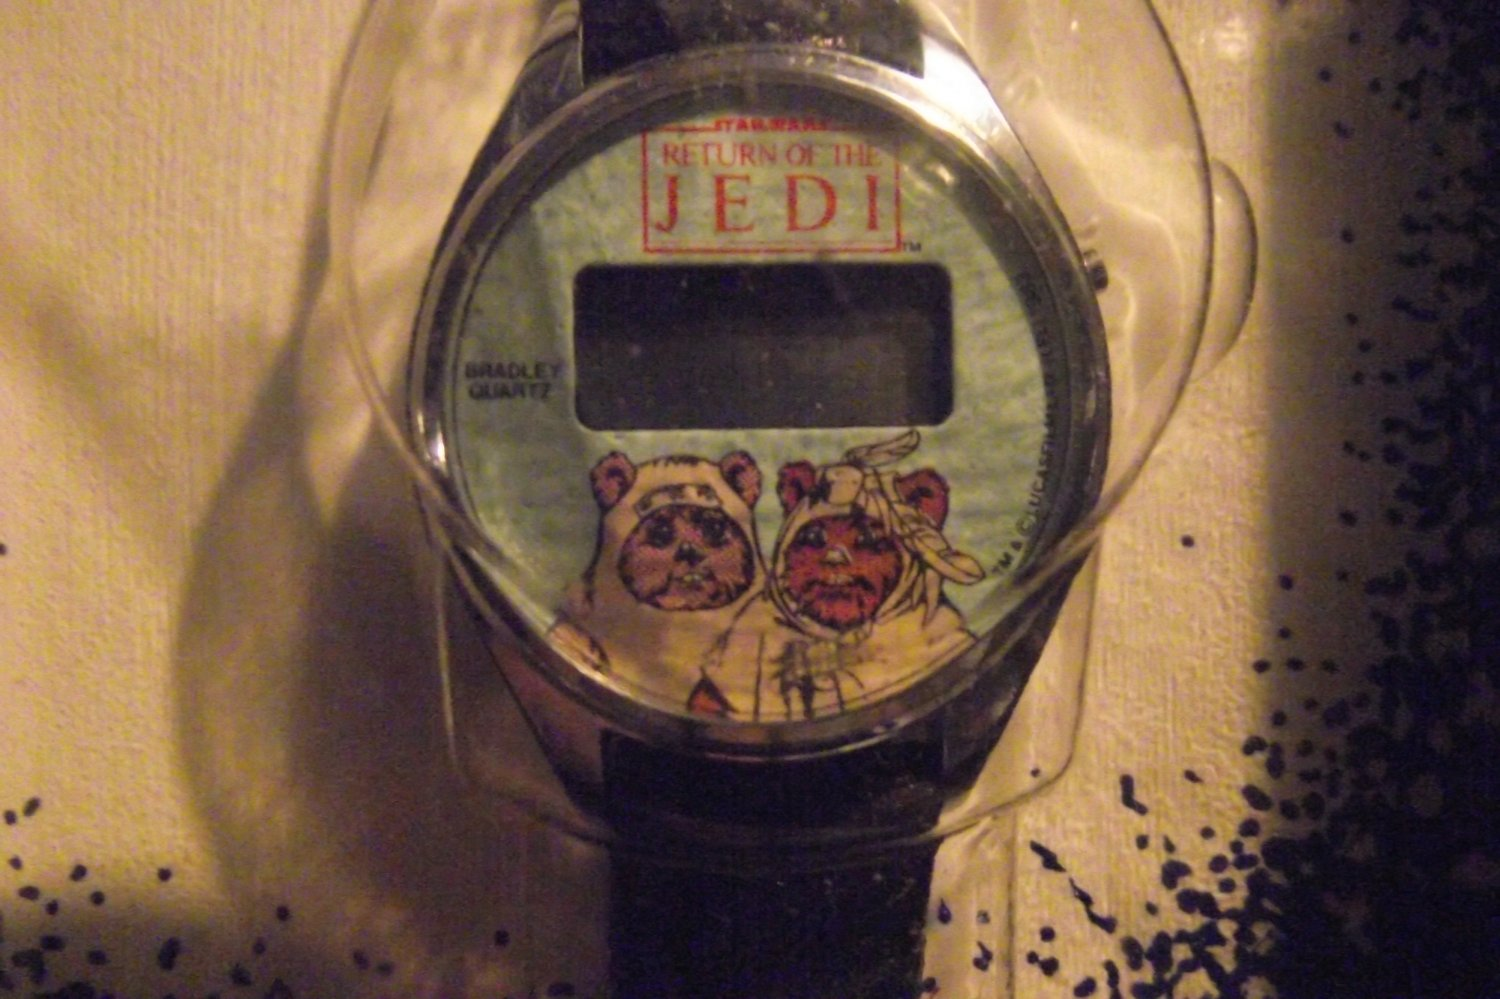 Star Wars ROTJ Return of the Jedi Ewoks Lcd watch in Bradley Box